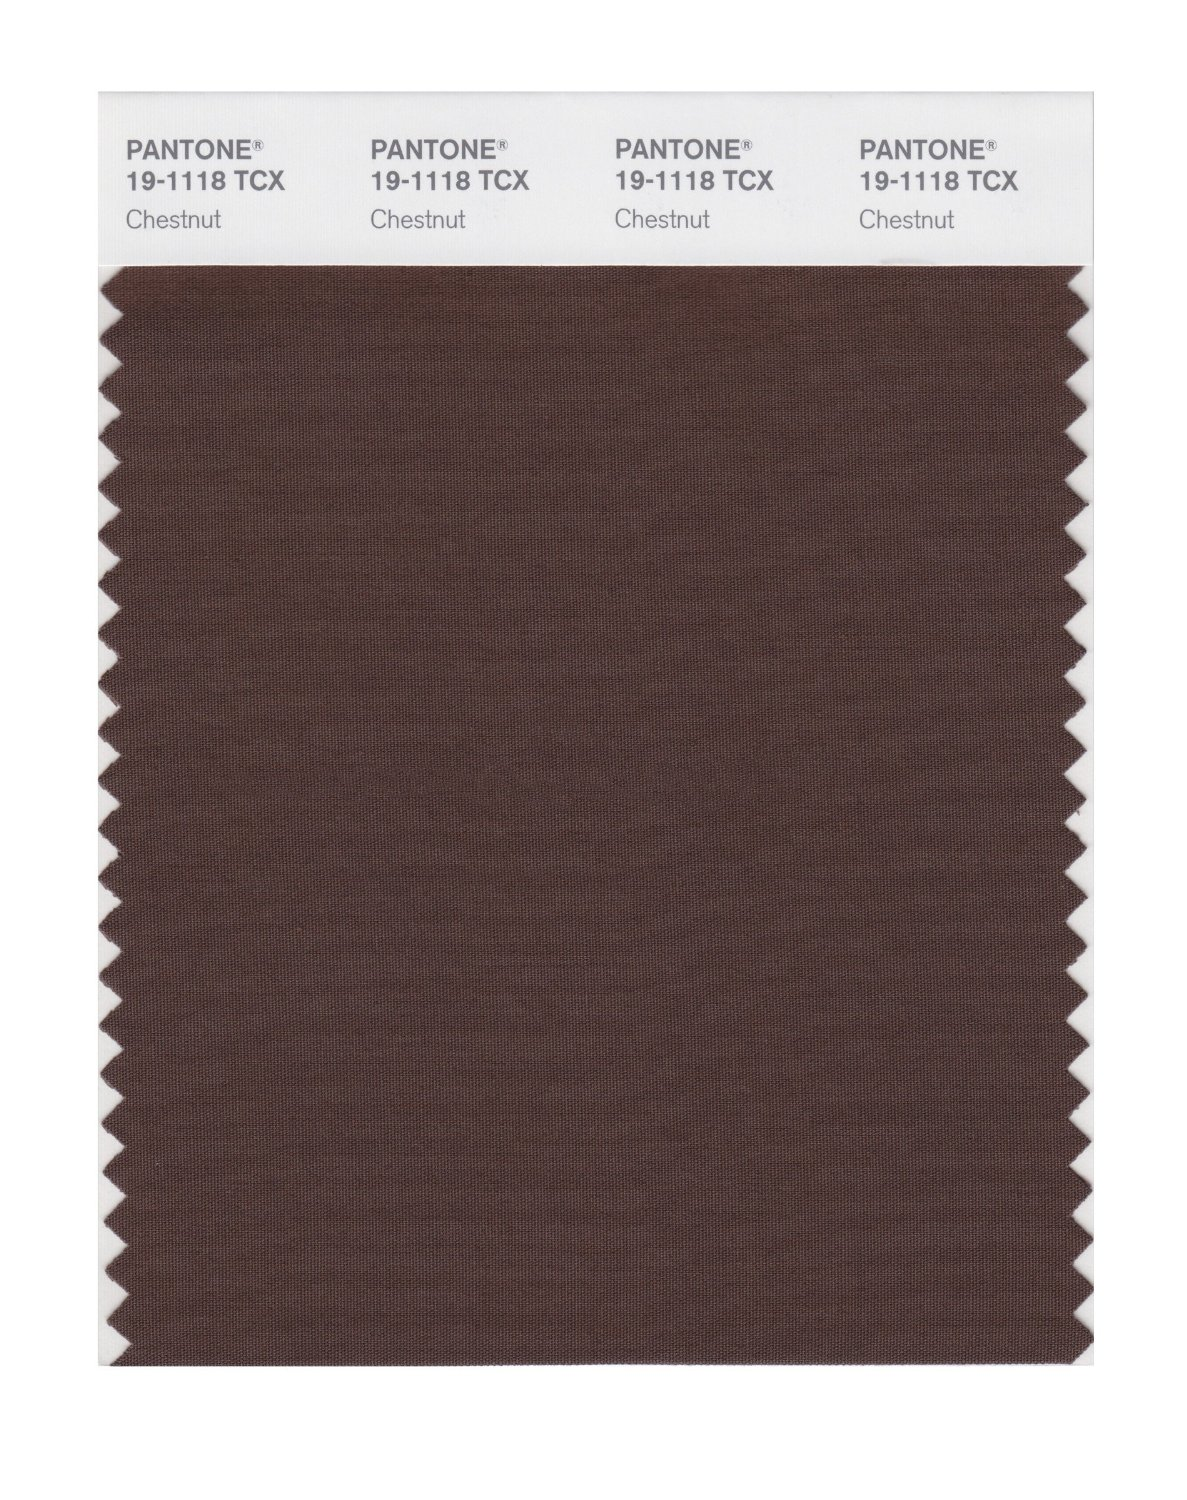 Pantone Smart Swatch 19-1118 Chestnut